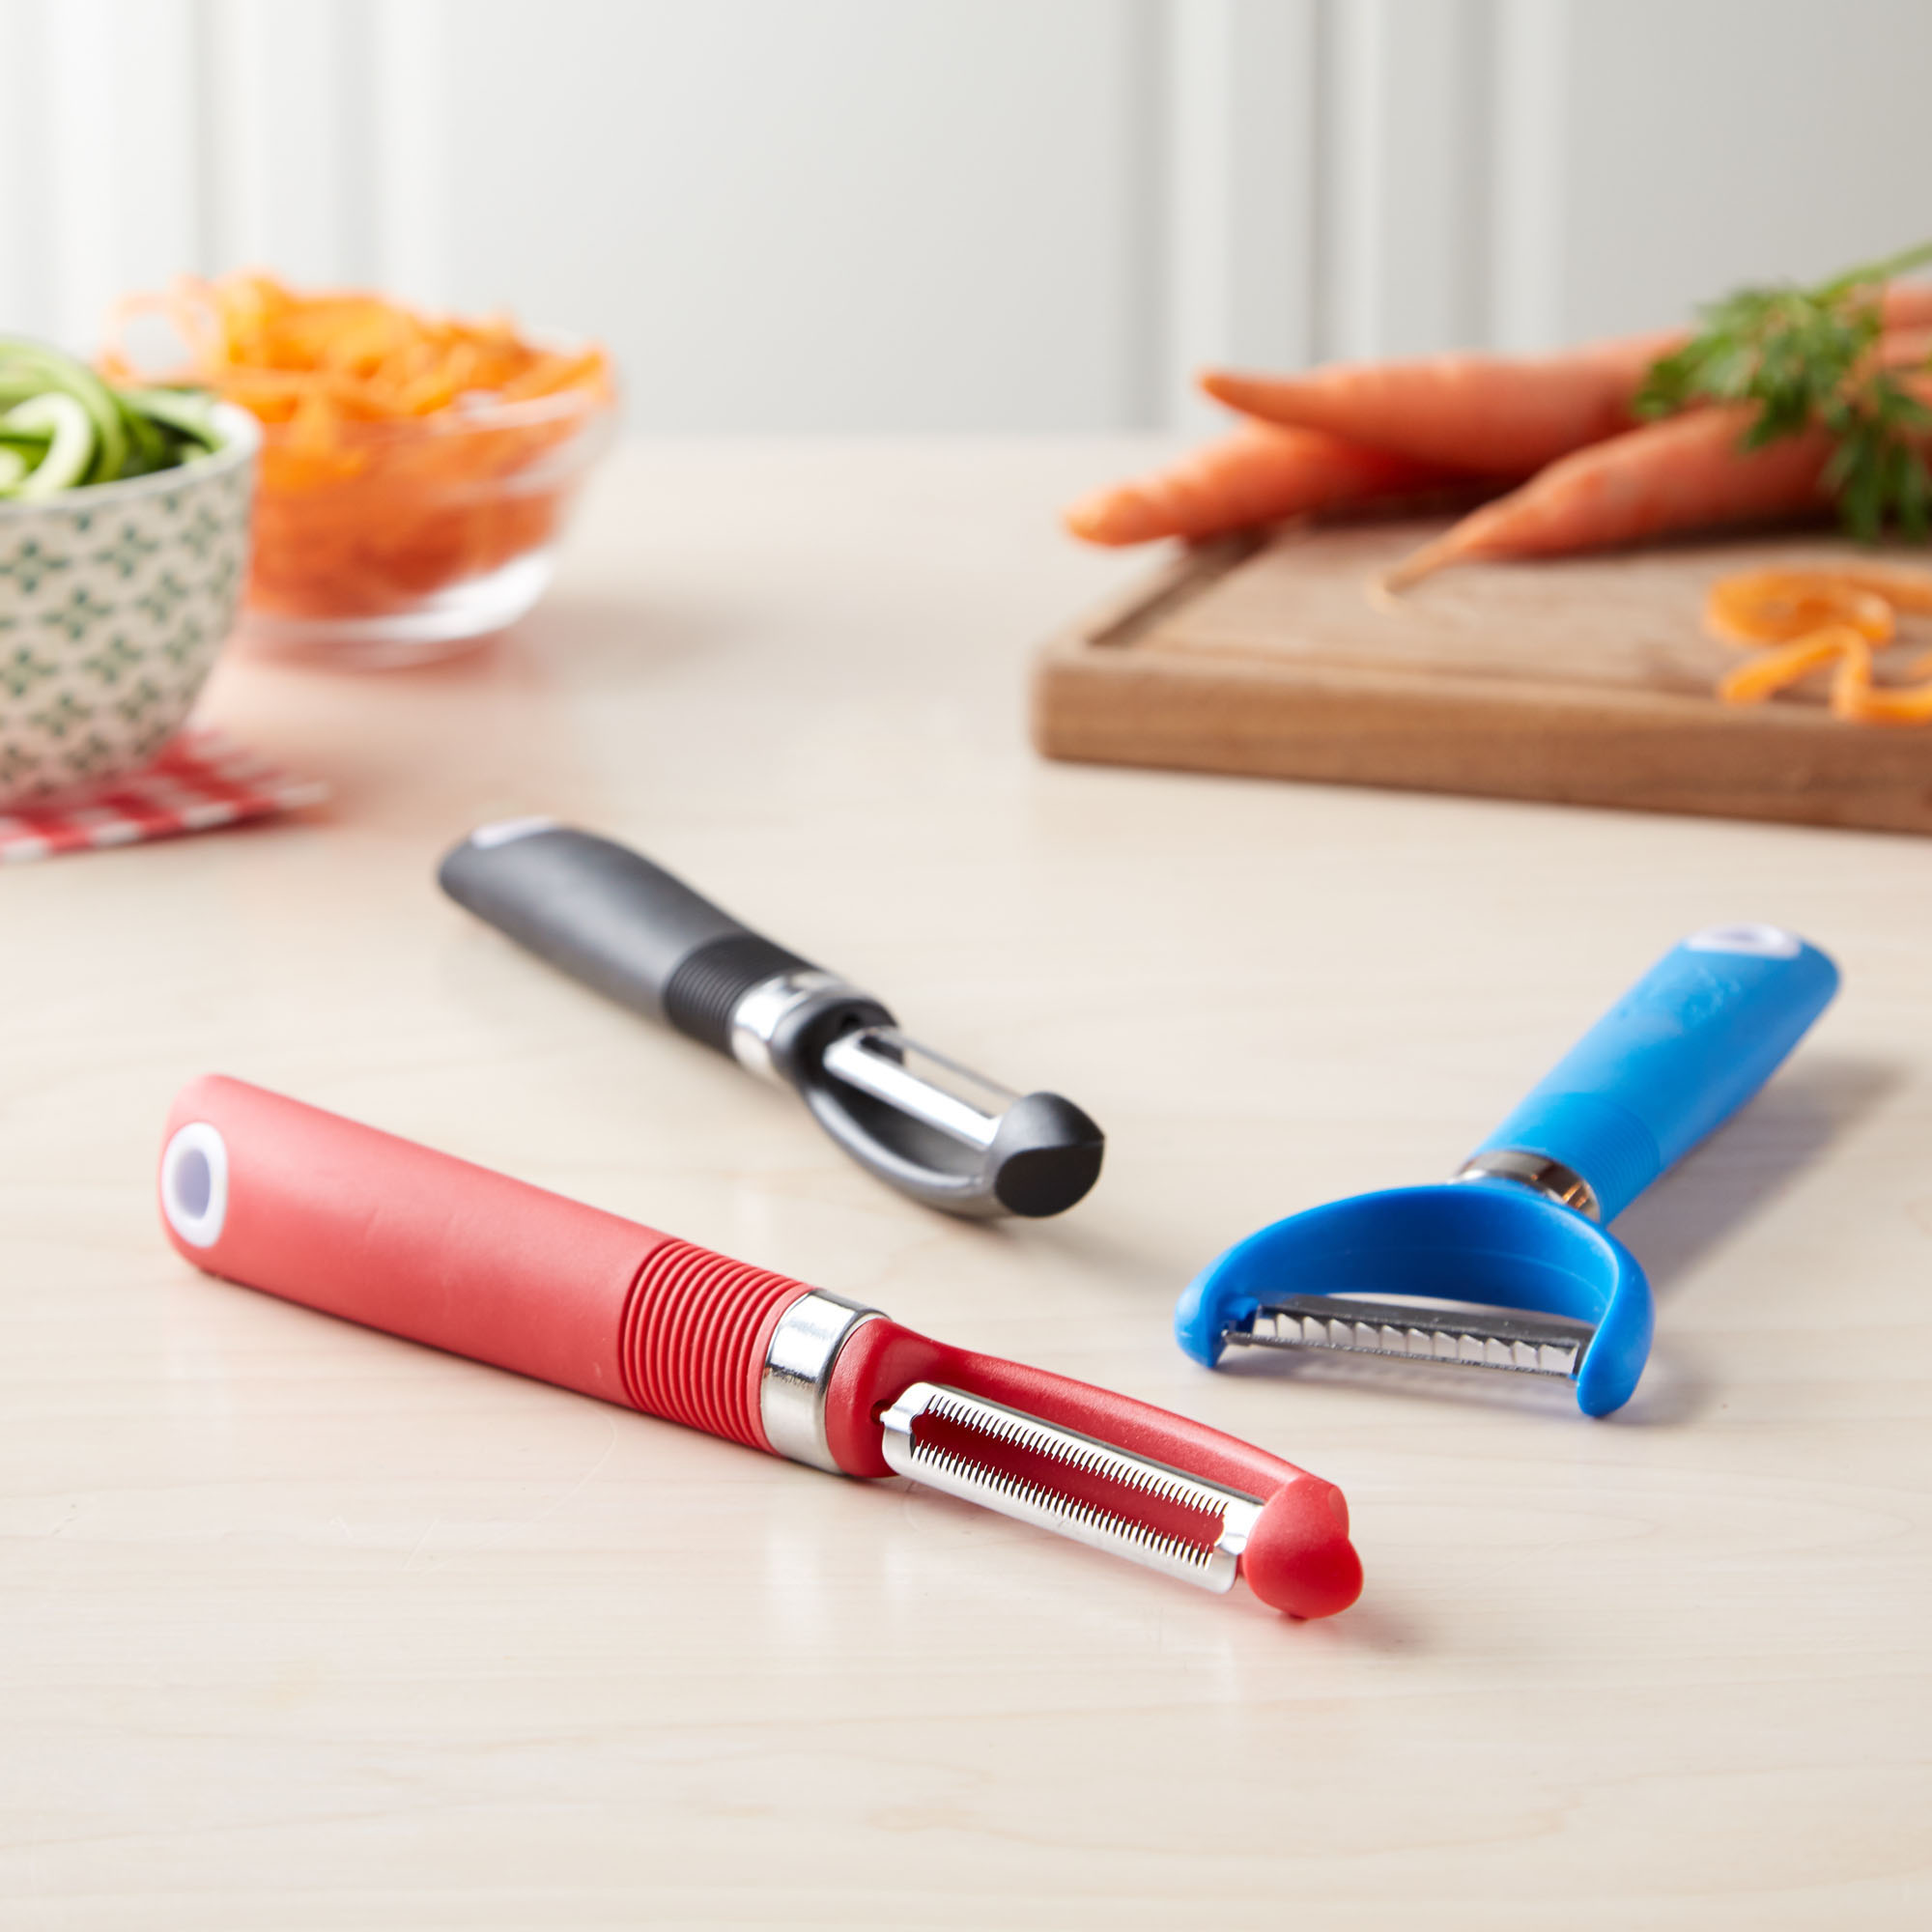 Tasty 3pc Peeler Set with Soft Grip Handles